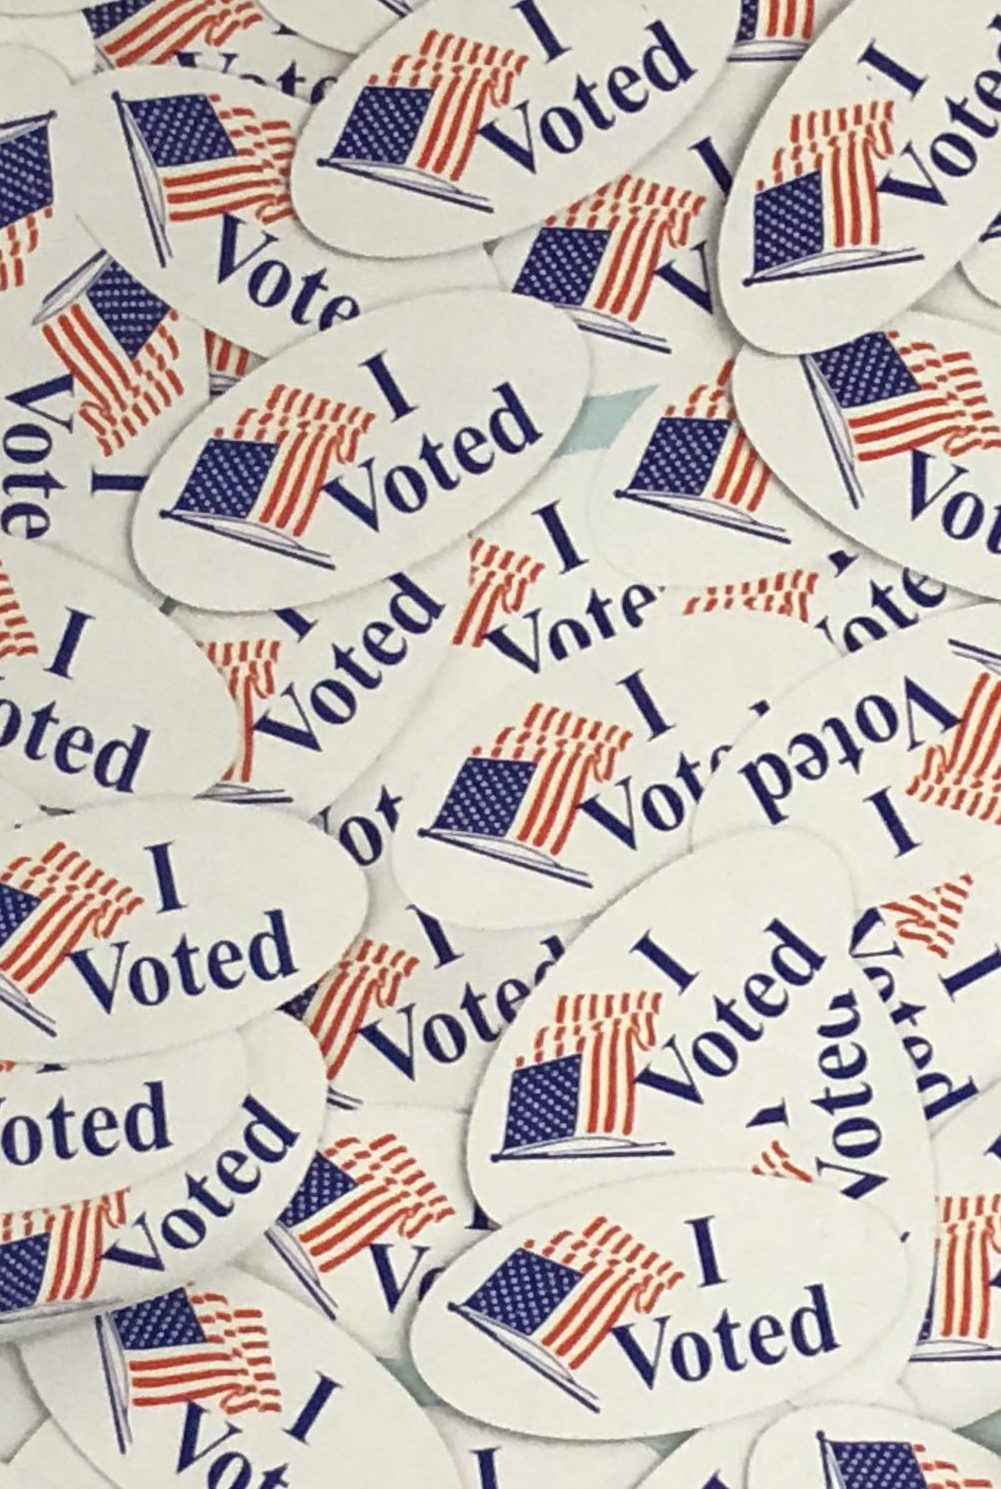 Turn out for this years' midterm elections was exceptionally high, with 47% of eligible Americans casting a ballot.